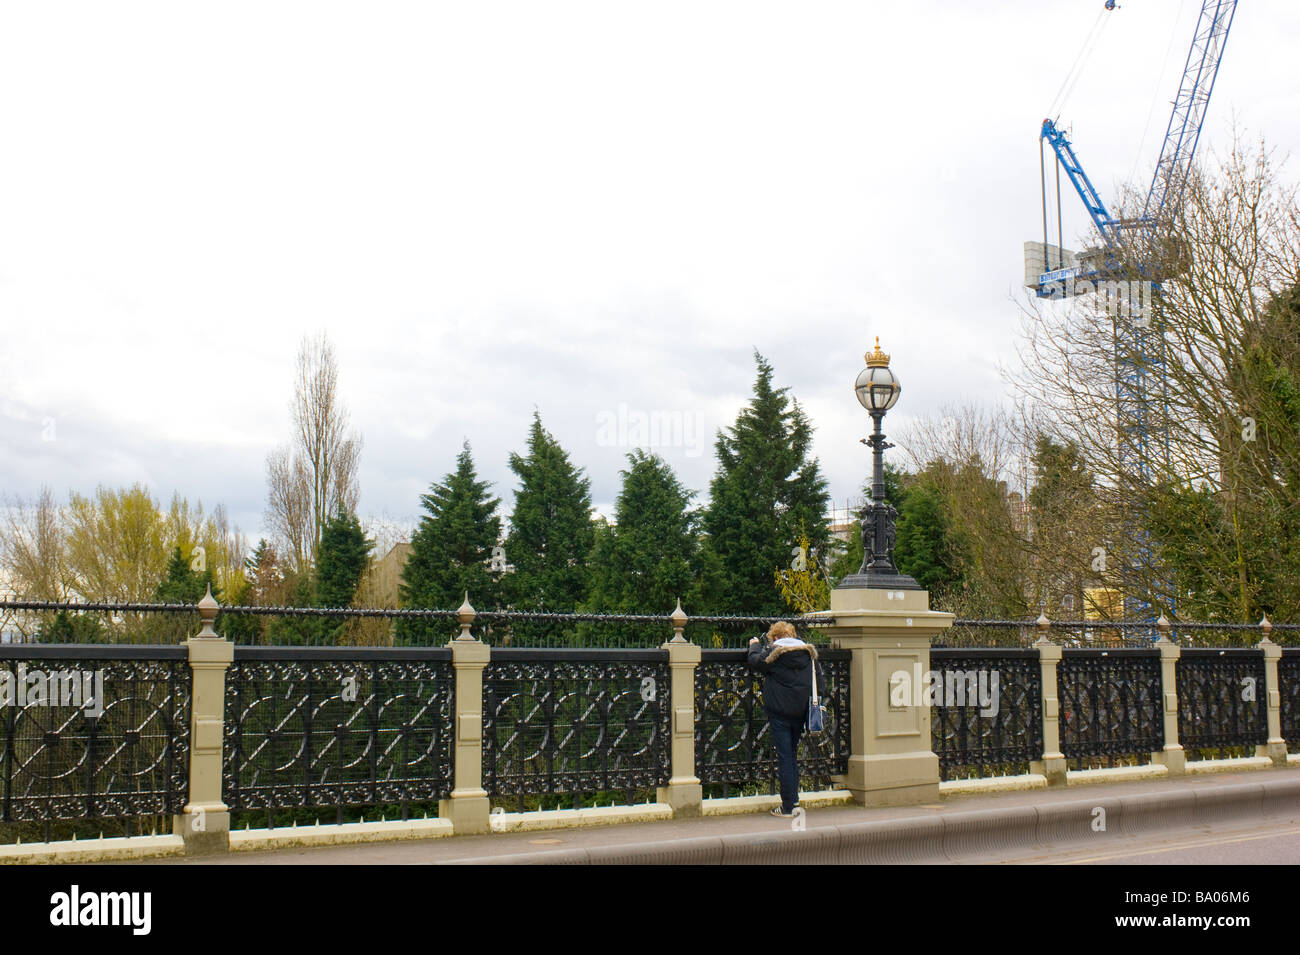 A pedestrian surveys the distant view of central London from victorian stone and cast iron infamous bridge in Highgate, - Stock Image